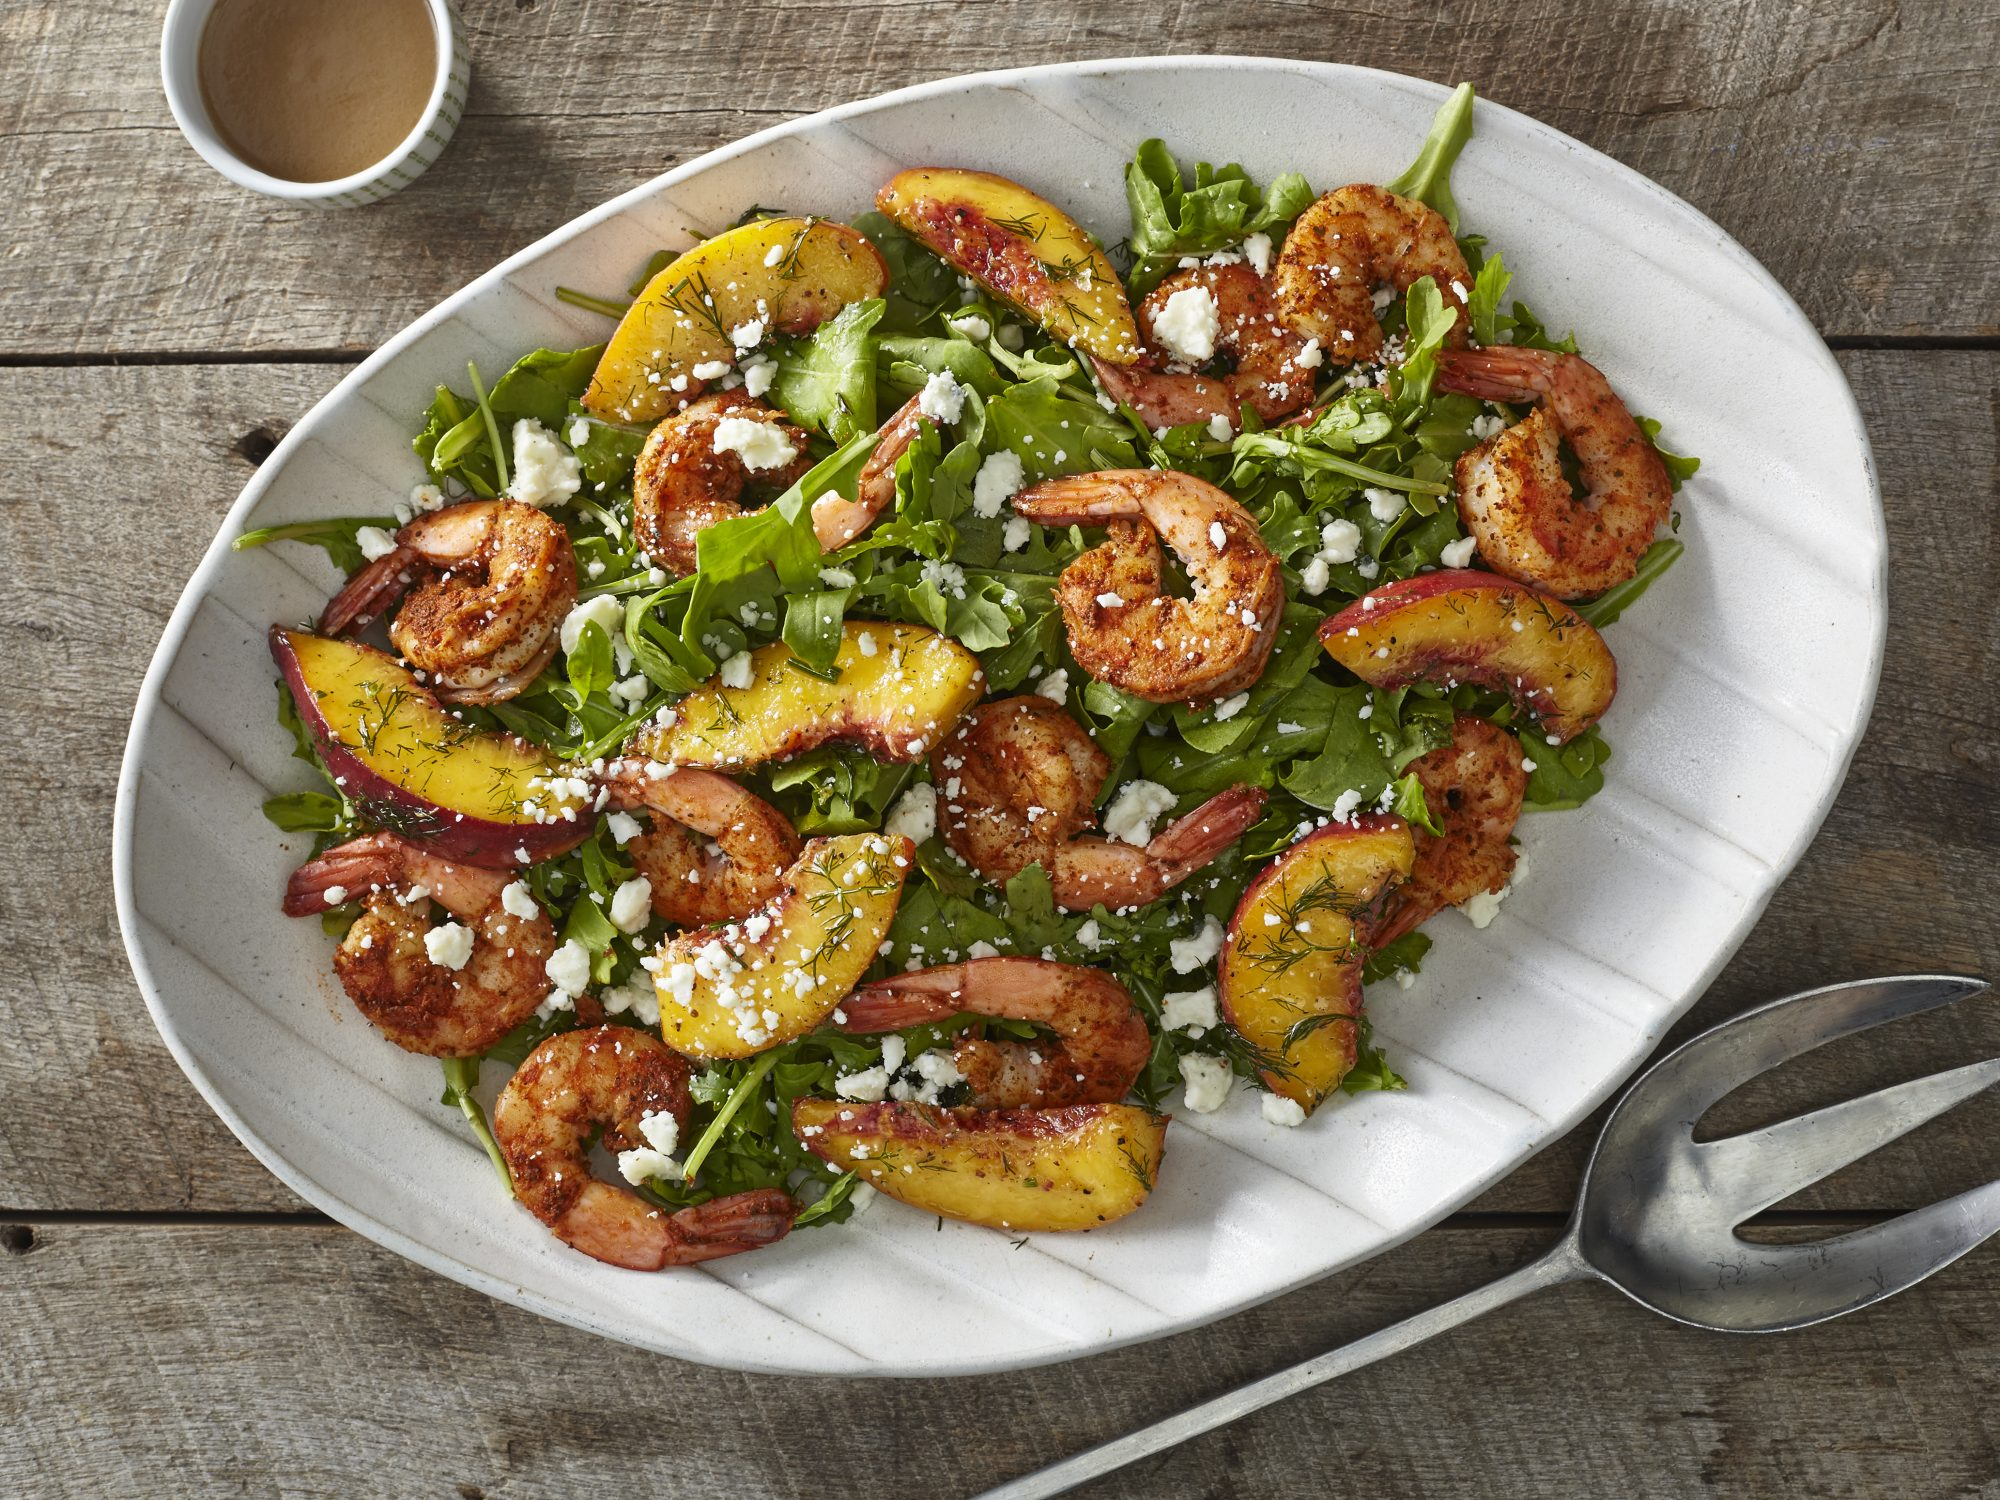 Shrimp and Marinated Peach Salad with Blue Cheese and Caramelized Shallot Vinaigrette